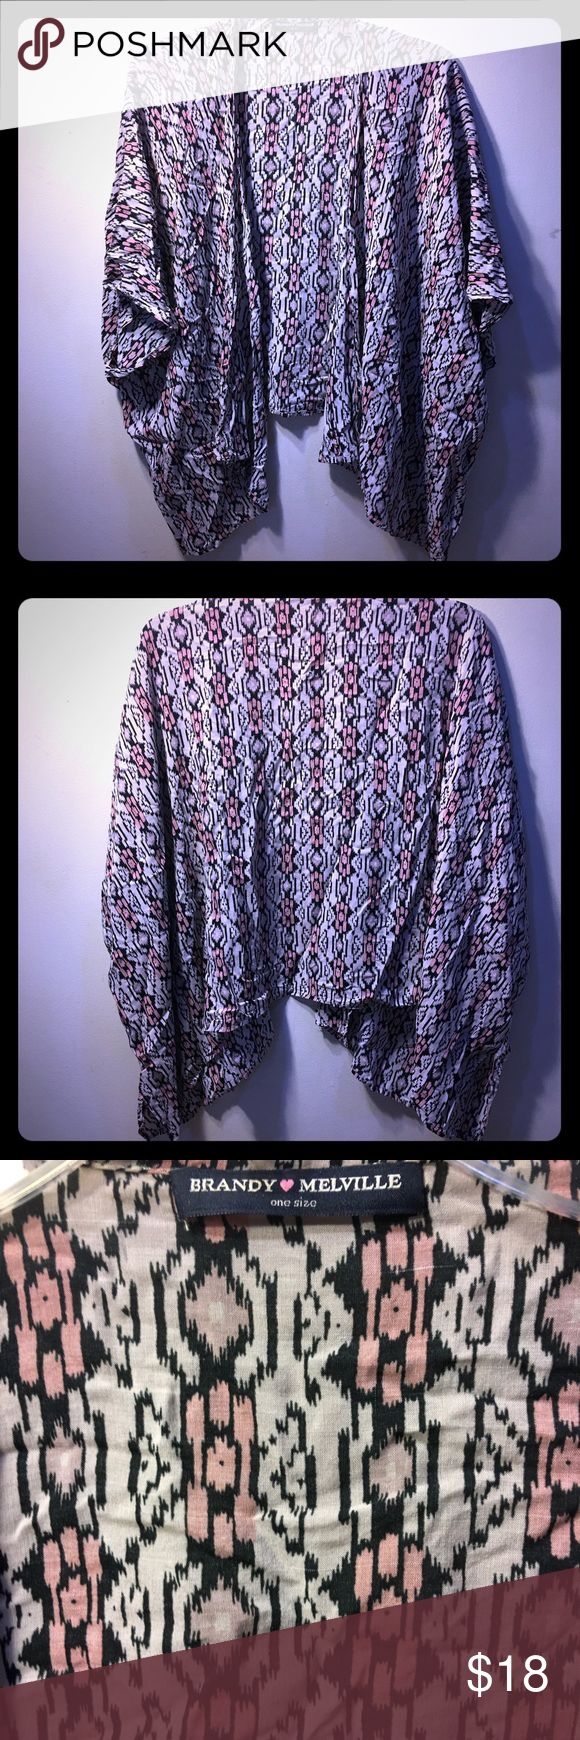 Brandy Melville Tribal / Geometric Open Cardigan Brandy Melville Tribal / Geometric / southwestern design Open Cardigan in one size.  Cascade bottom with hem being shorter in front and longer to the side.  Has some pulled threads.  Wrinkled.  From a smoke free home. Brandy Melville Tops